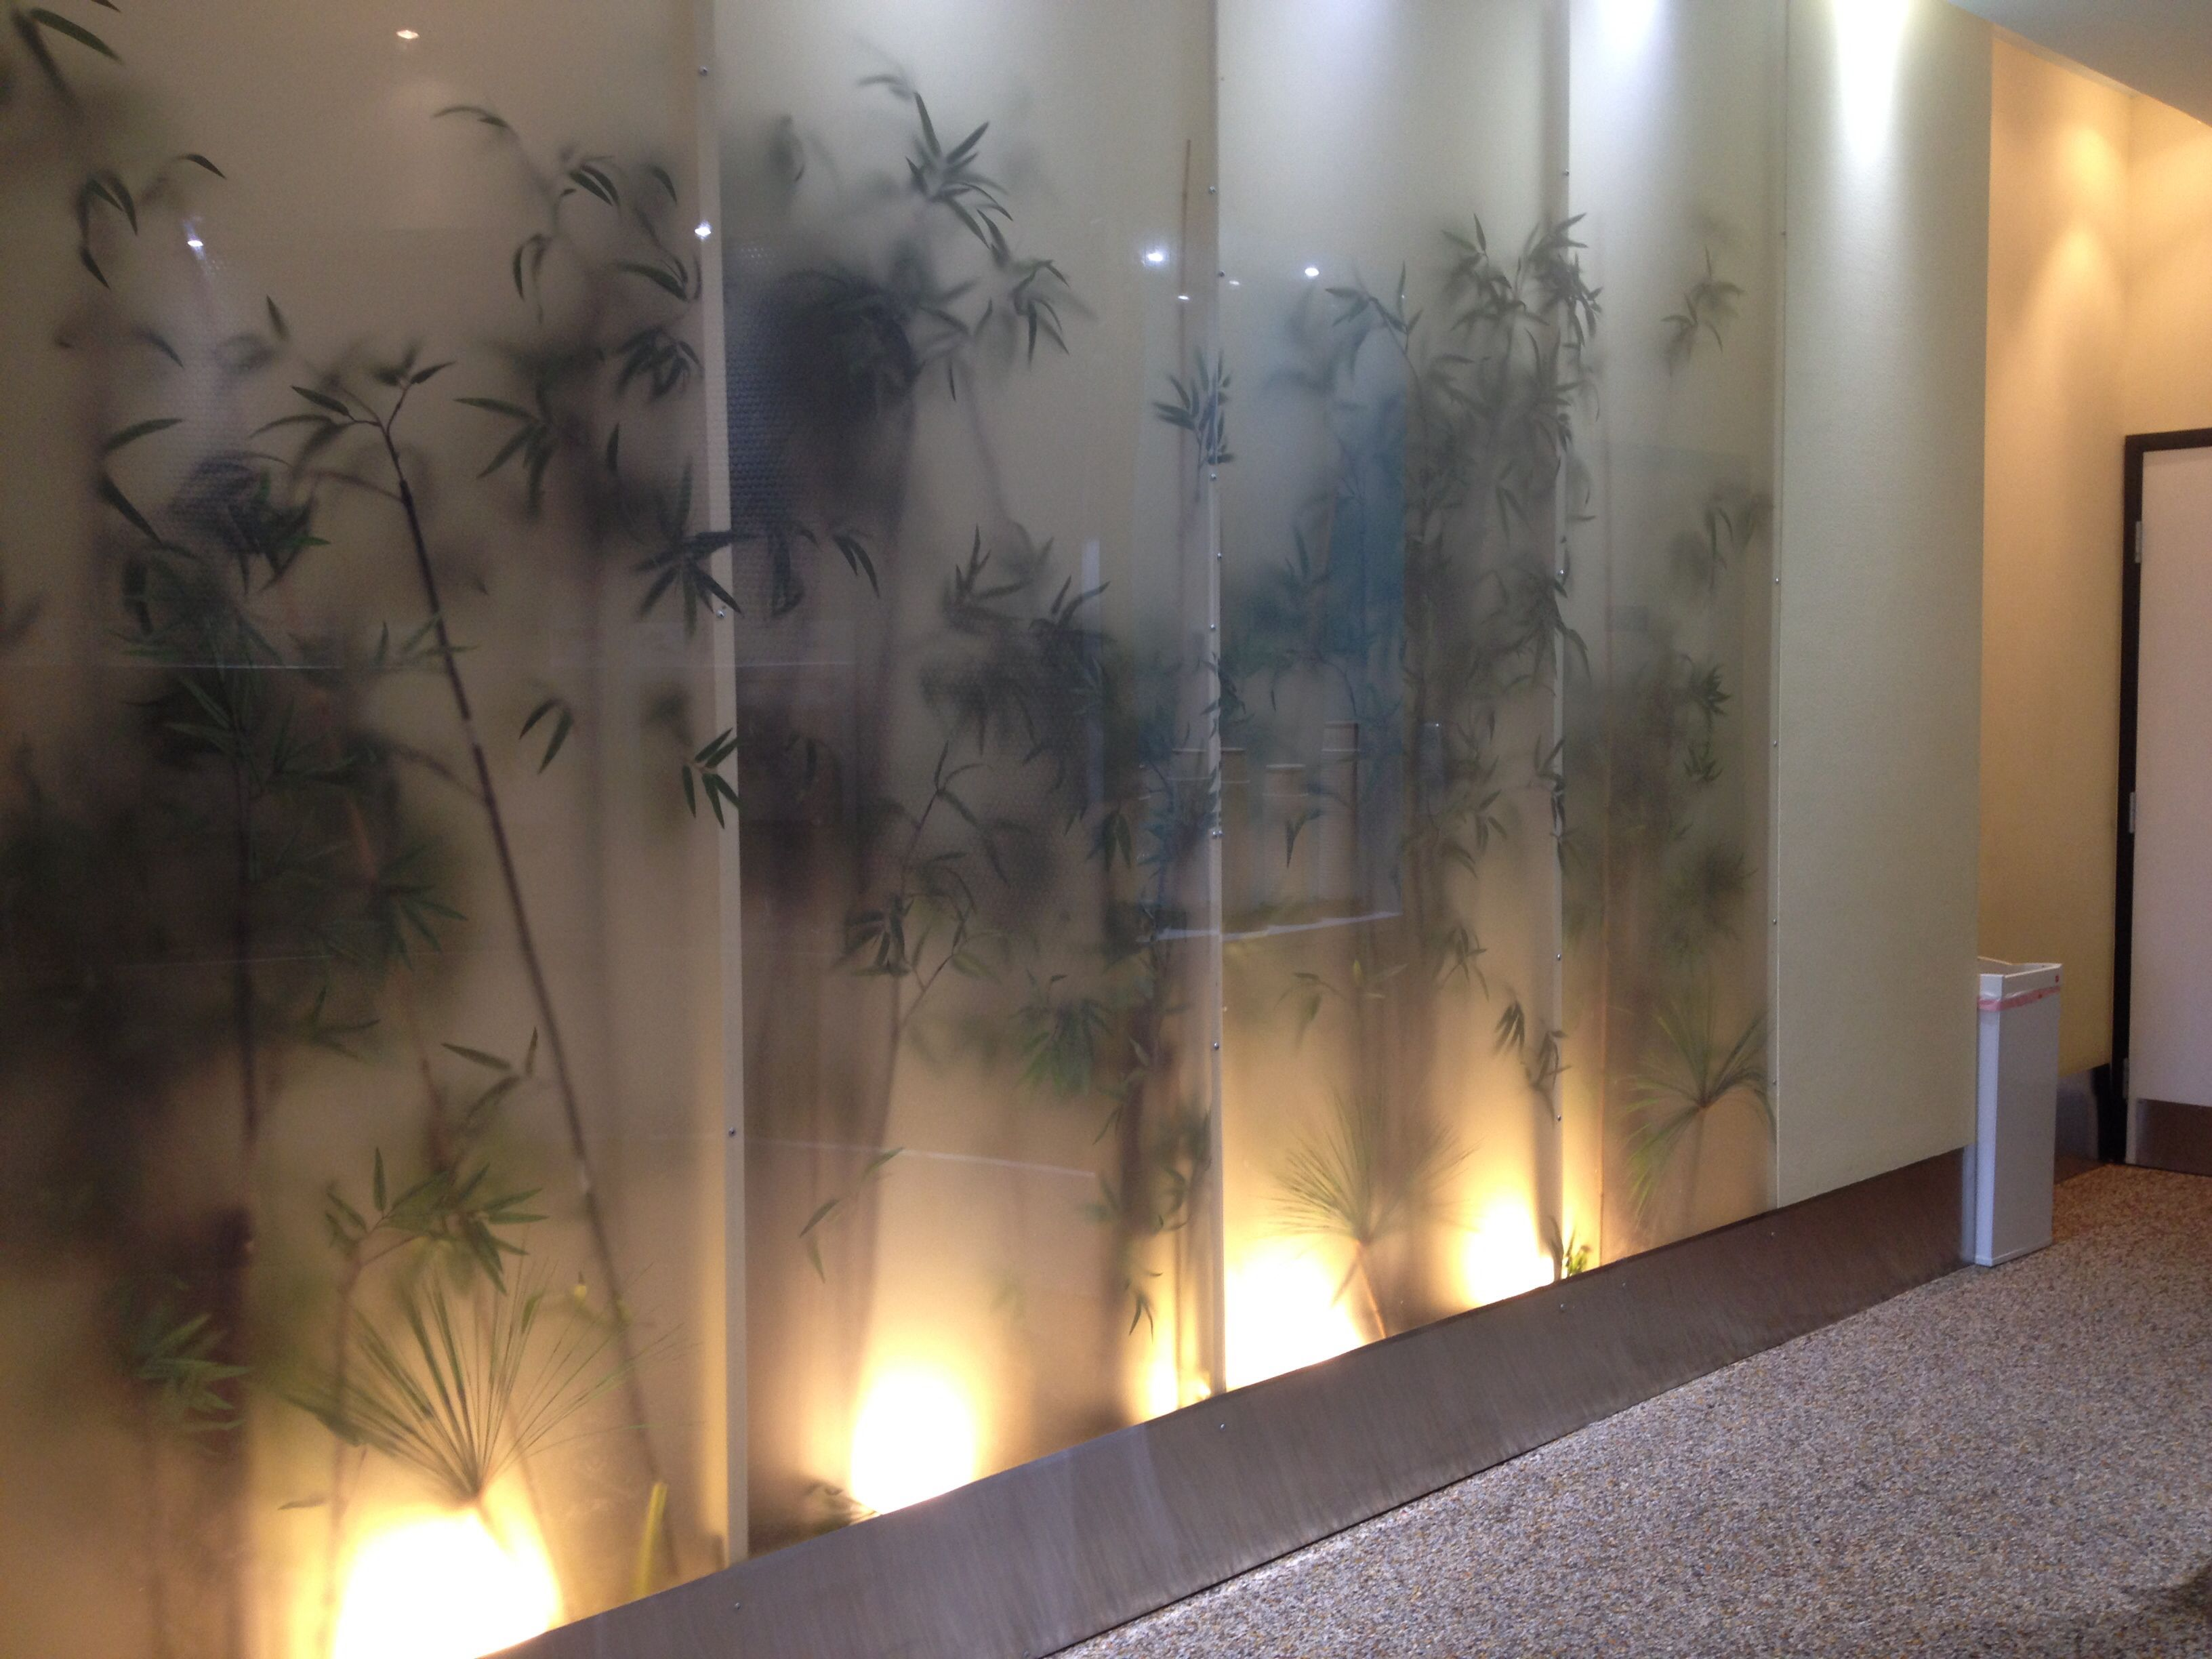 Silk plants behind frosted glass gives a jungle feel for